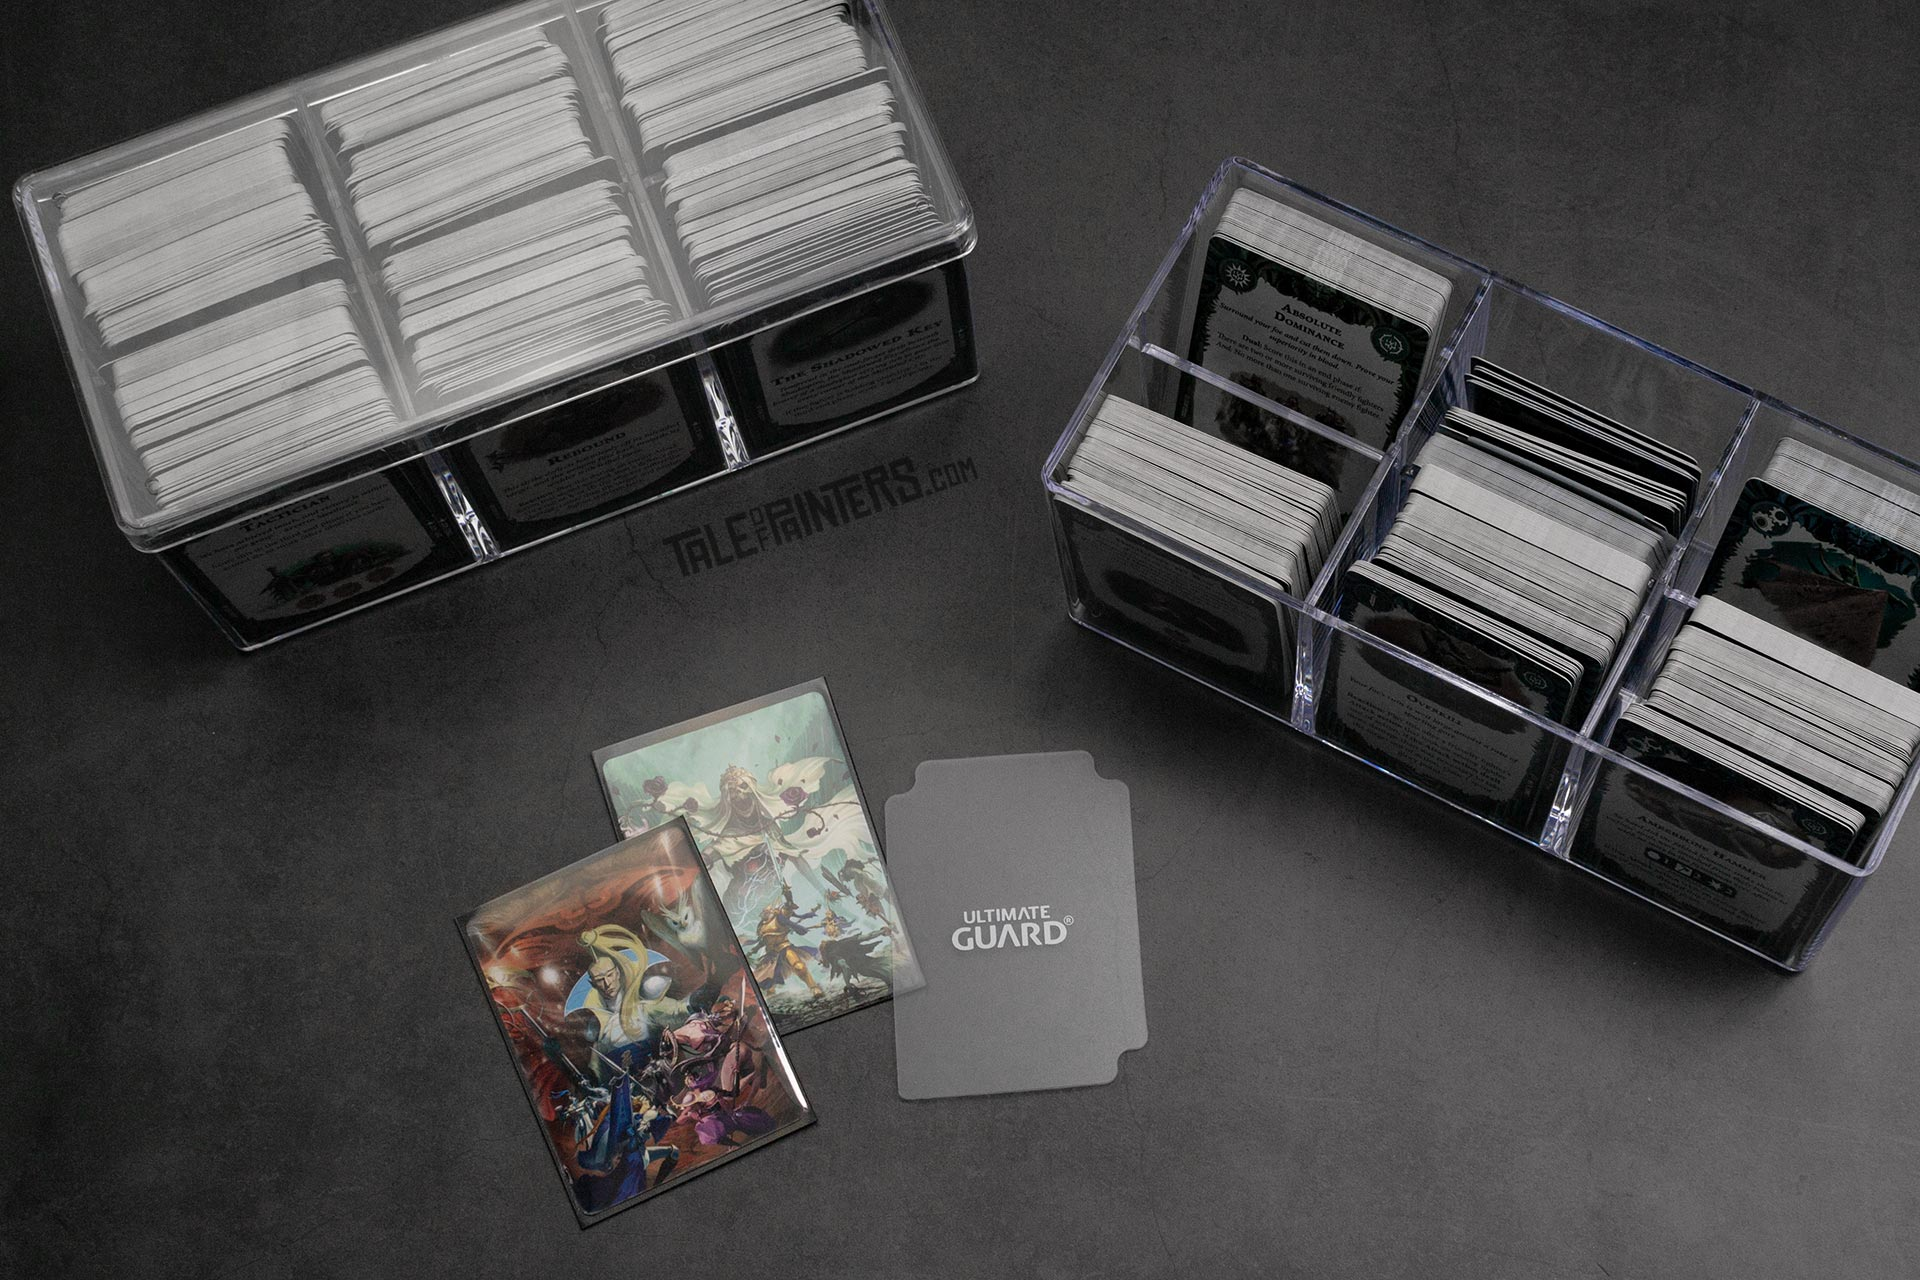 How to store and protect Warhammer Underworlds cards - Stack'n'Safe 480